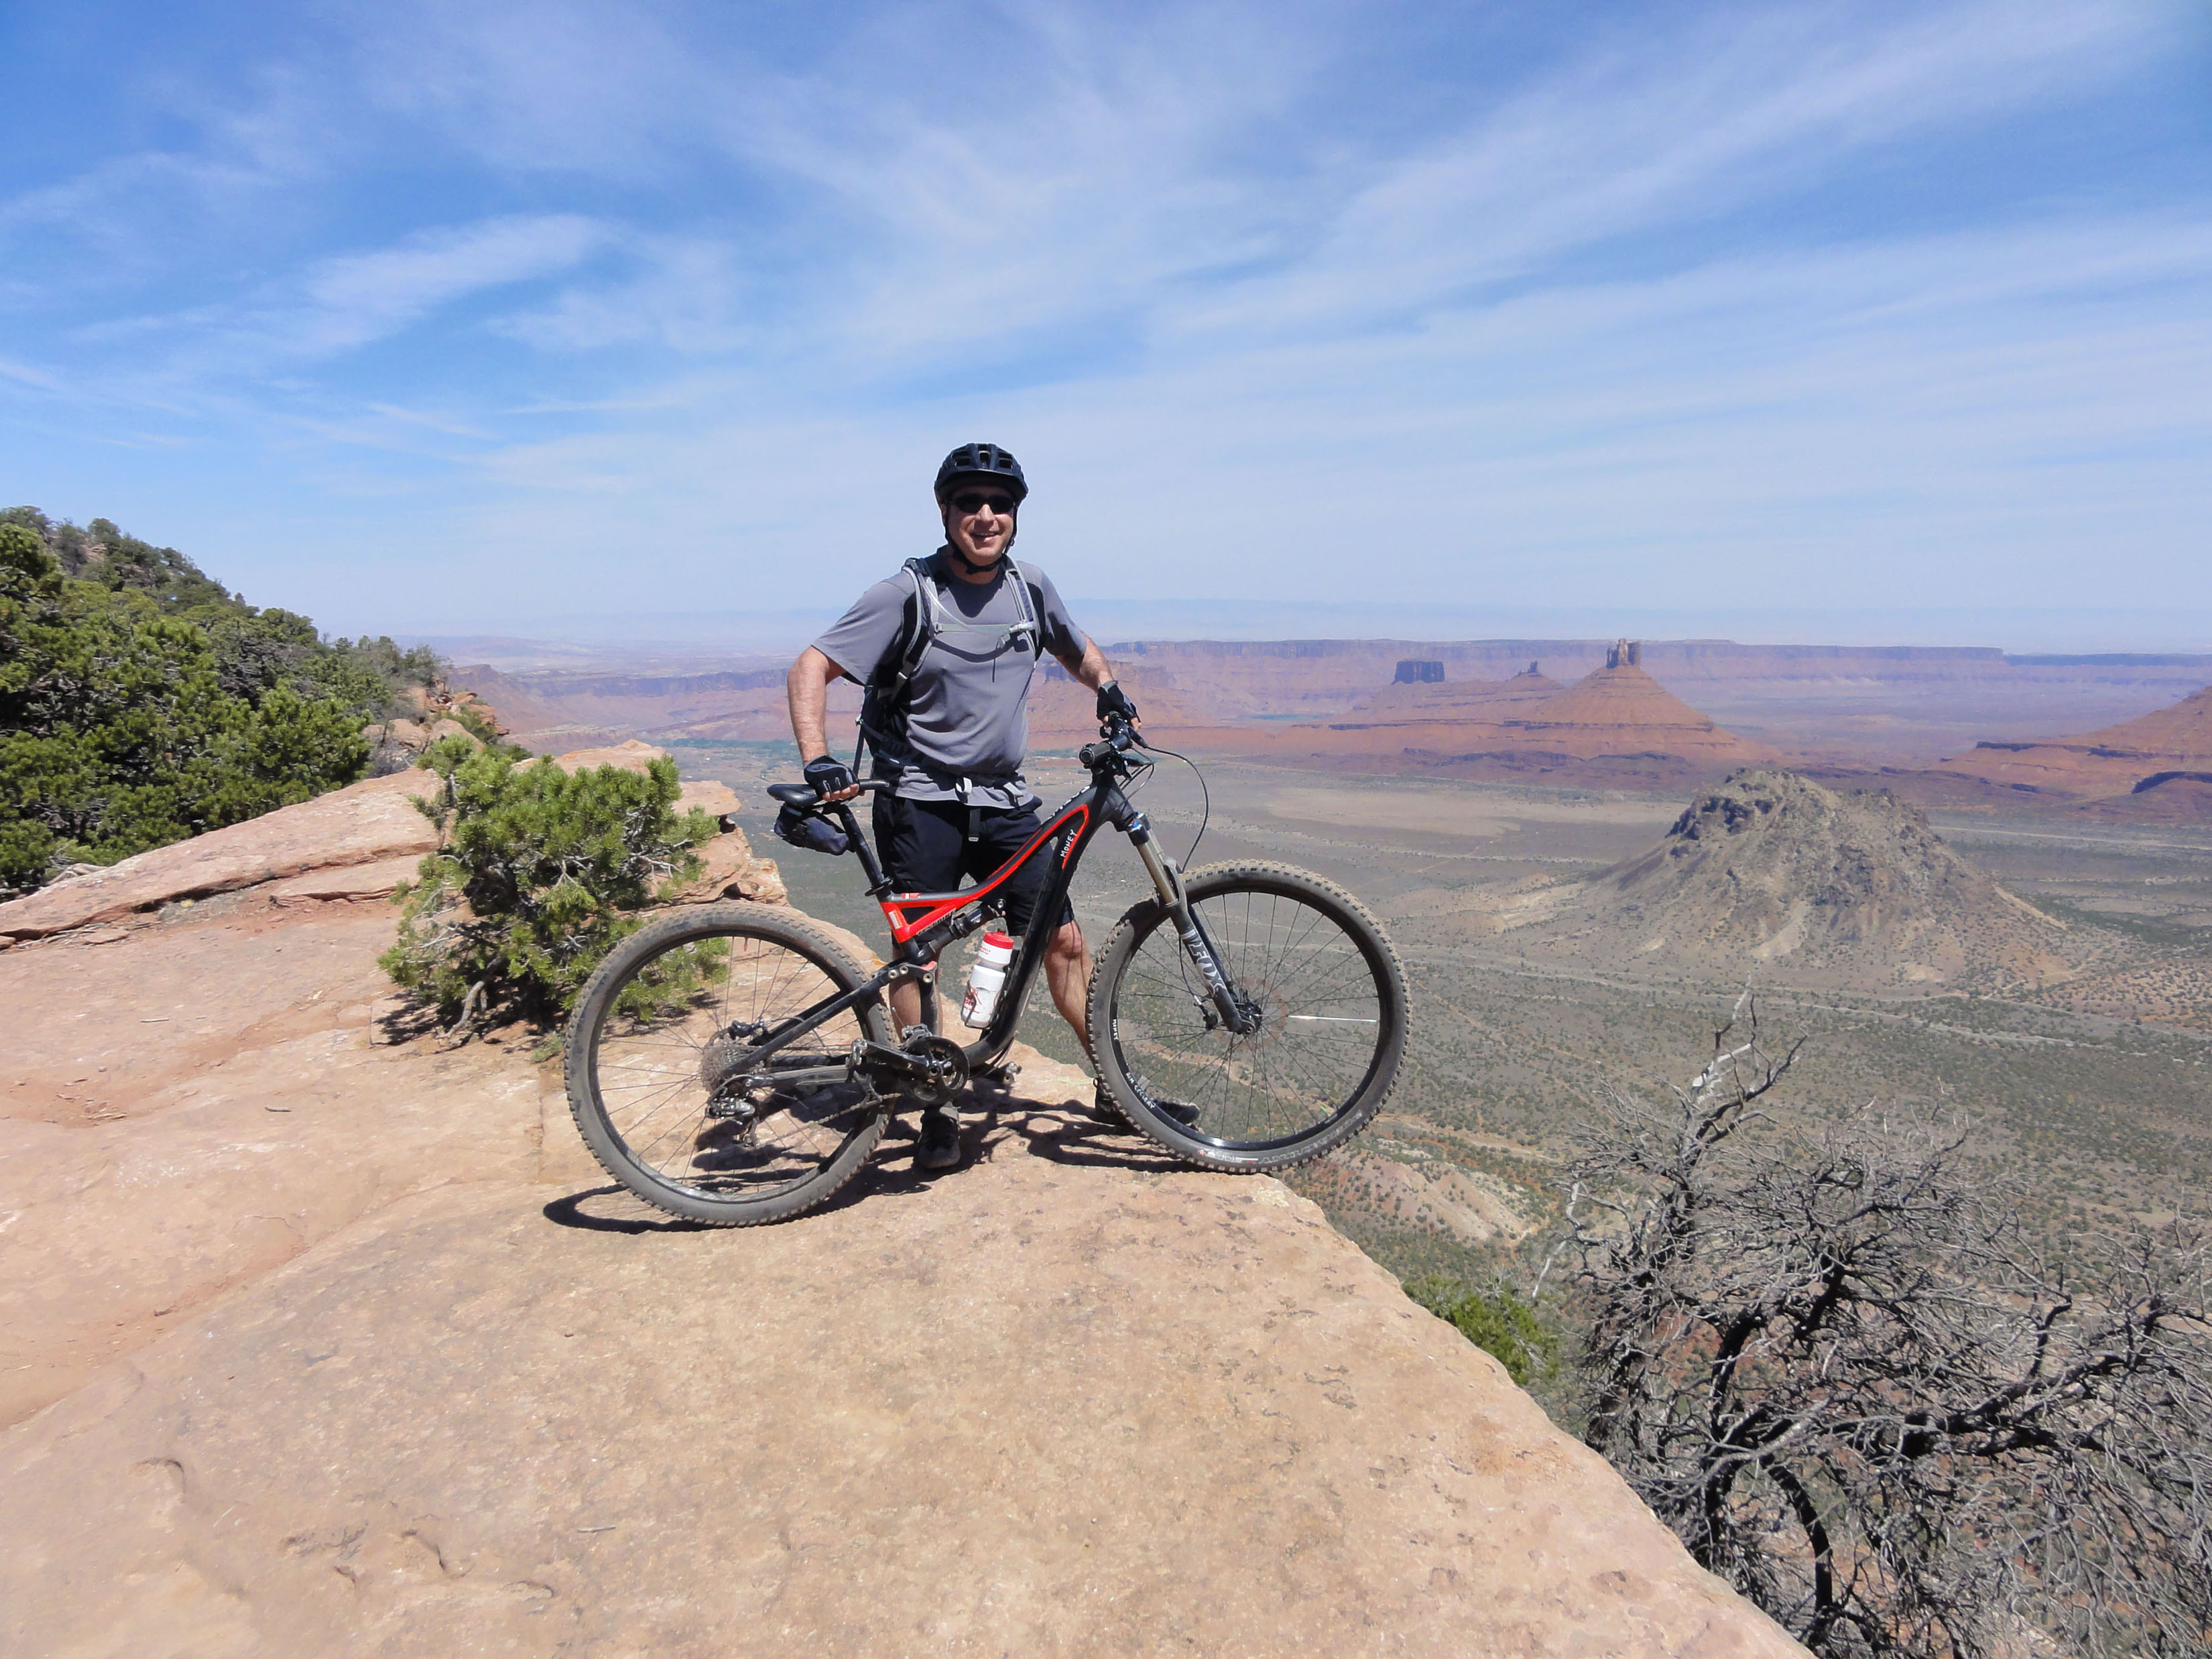 The Porcupine Rim is an iconic bike route and the scenery is always changing.